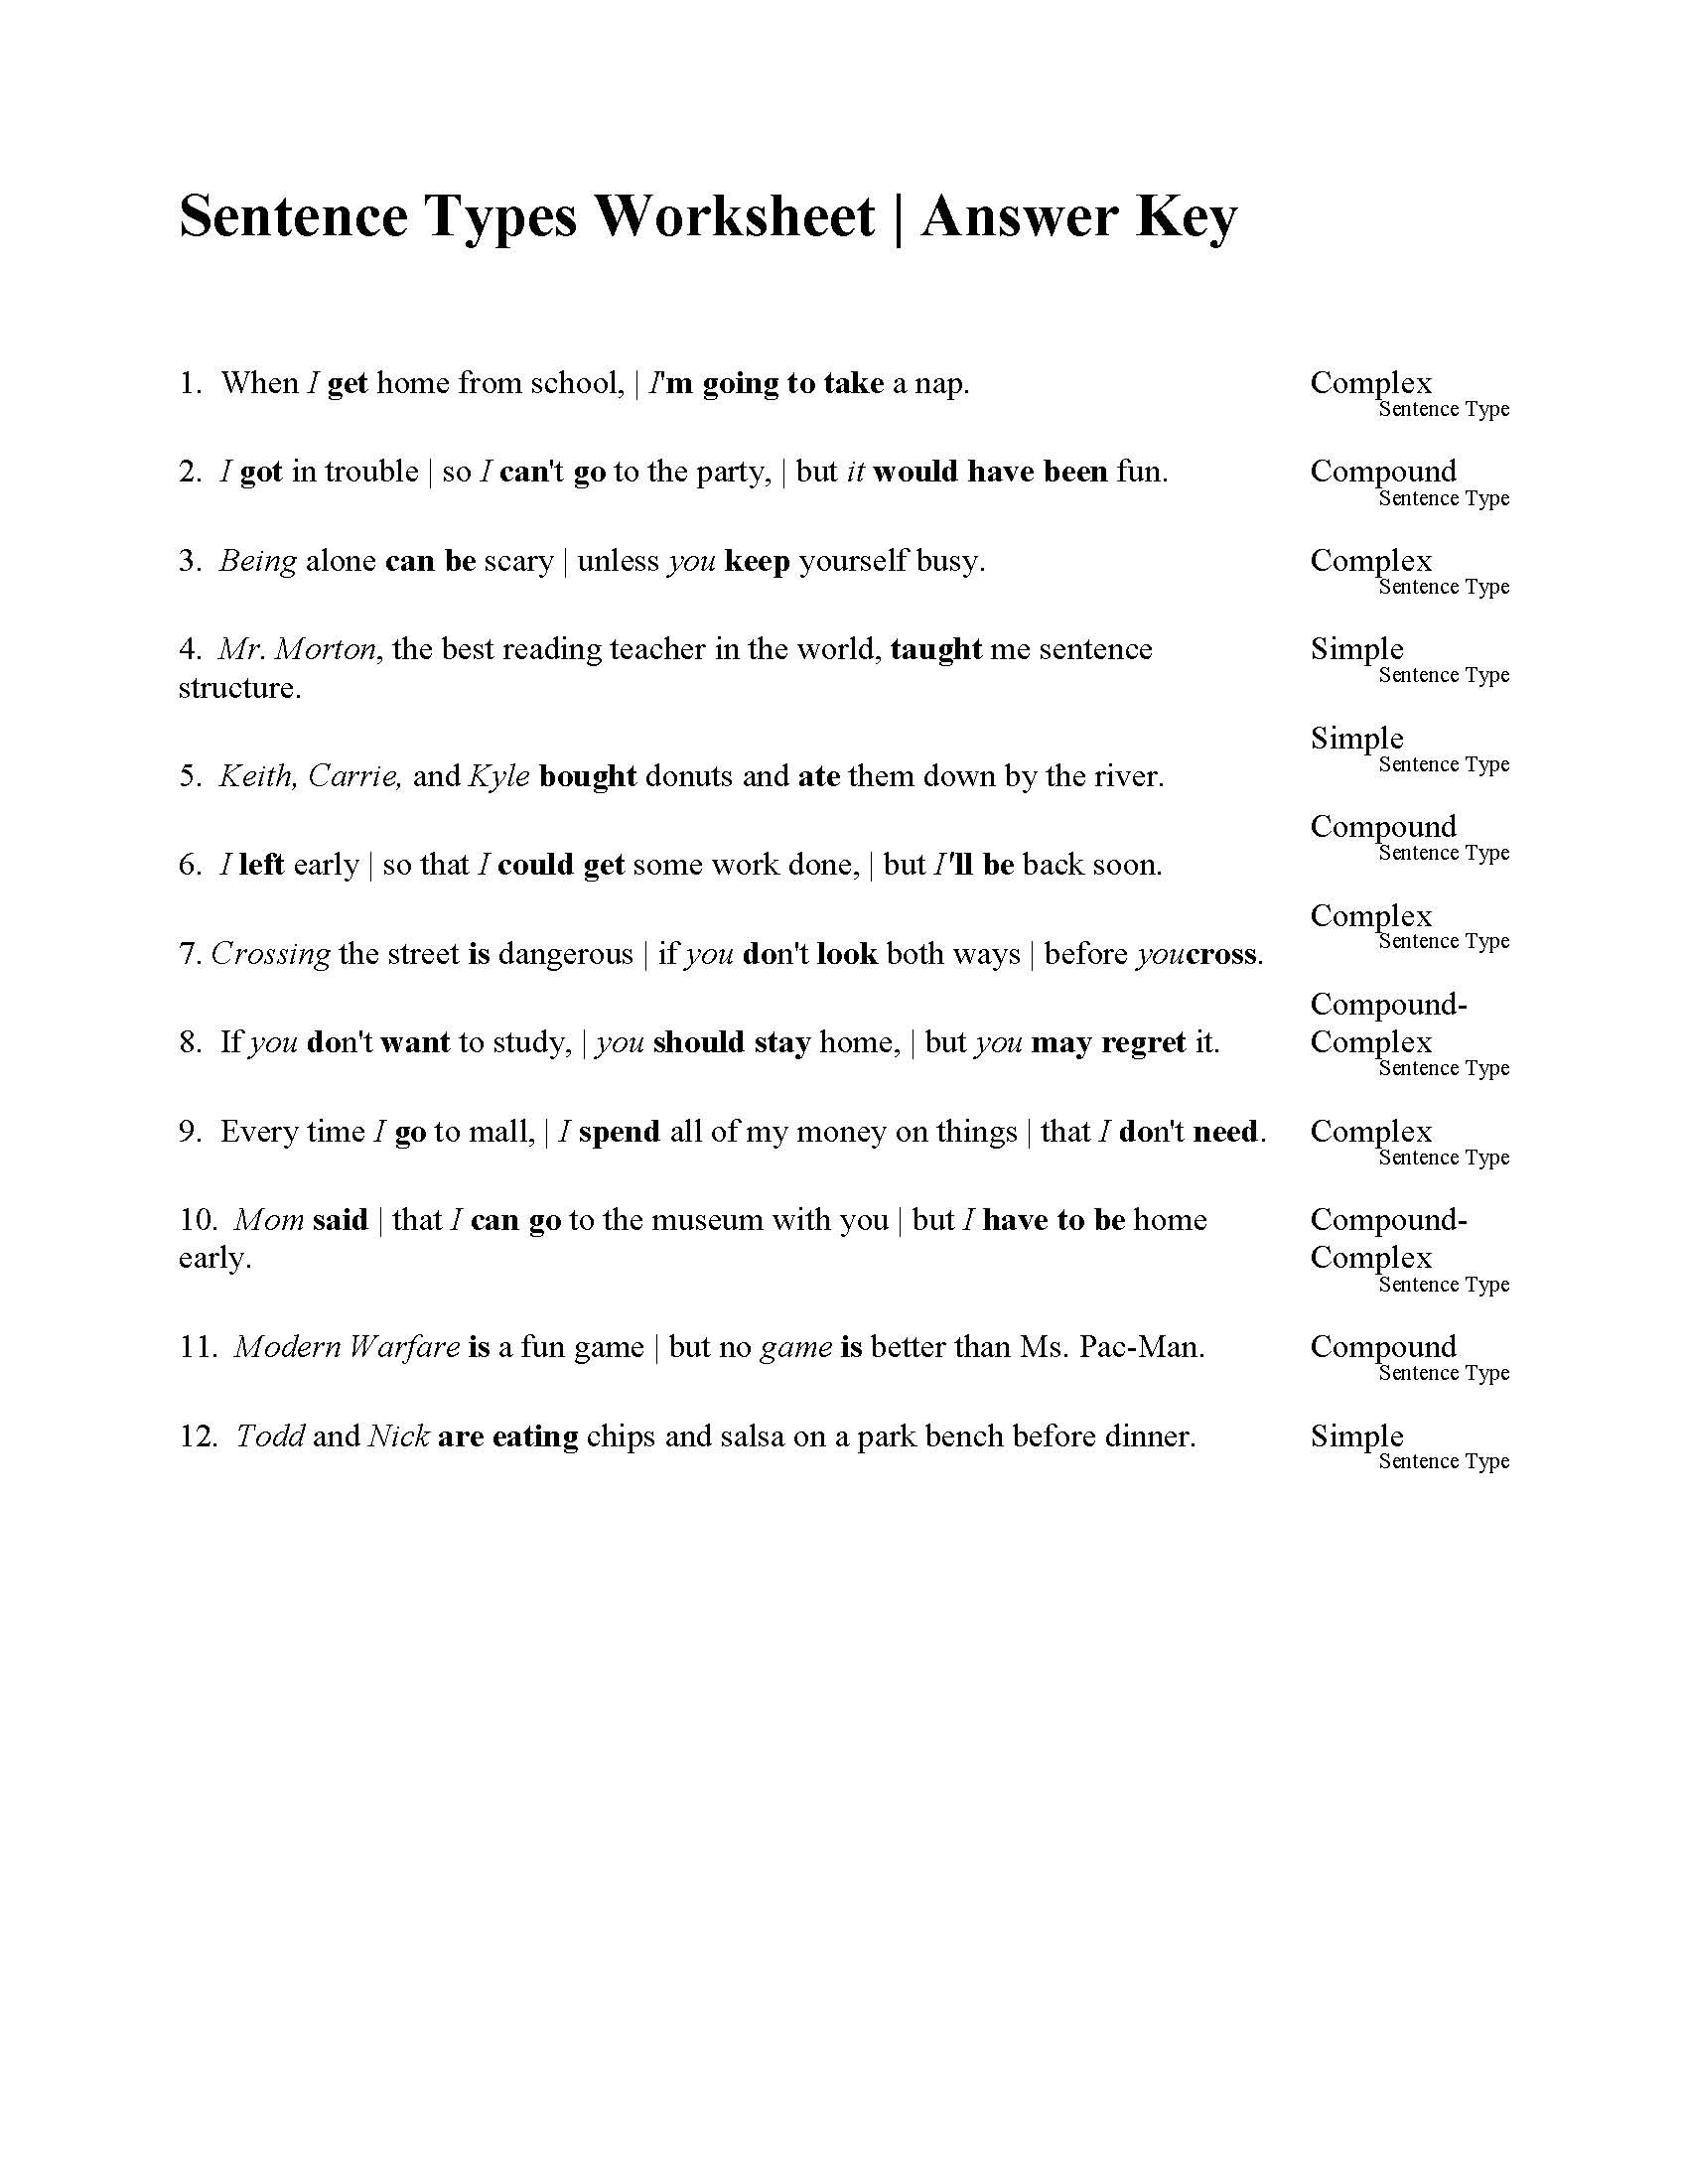 Complete Sentence Worksheet 3rd Grade Sentences Types Worksheet Answers Sentence Exercises